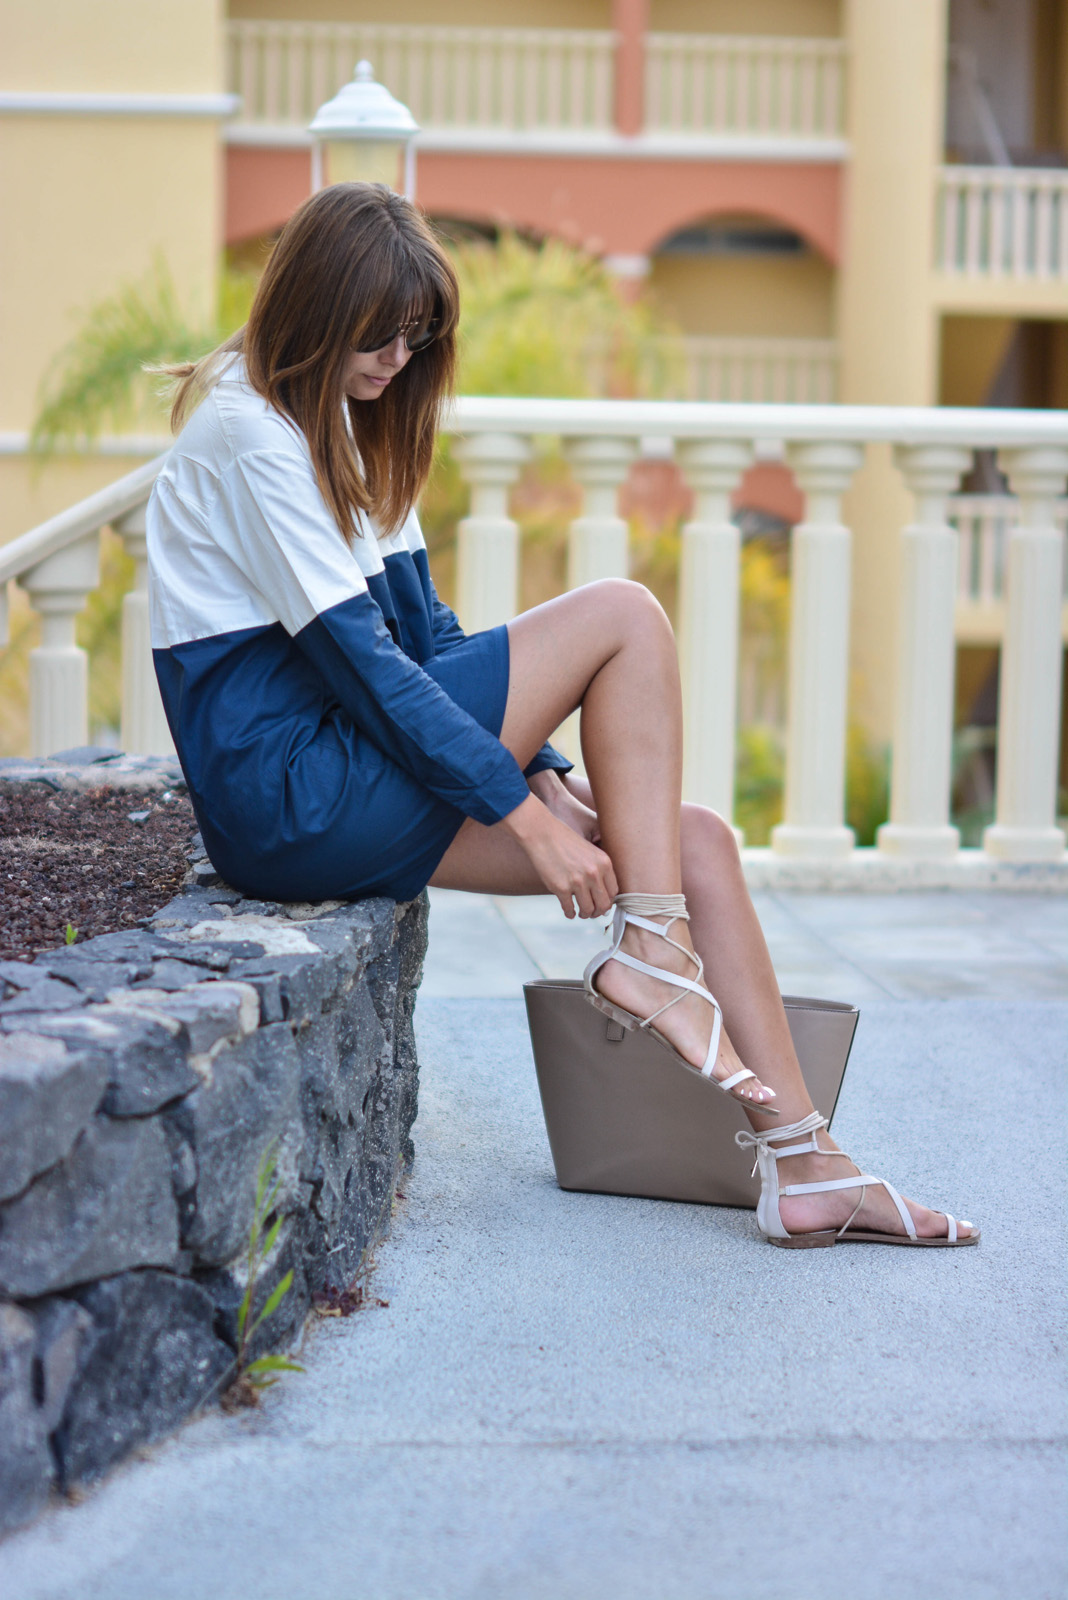 EJSTYLE - Emma Hill wears Navy & White colour block shirt dress, Mango tie gladiator sandals, Mango Saffiano tote bag, OOTD, holiday vacation outfit